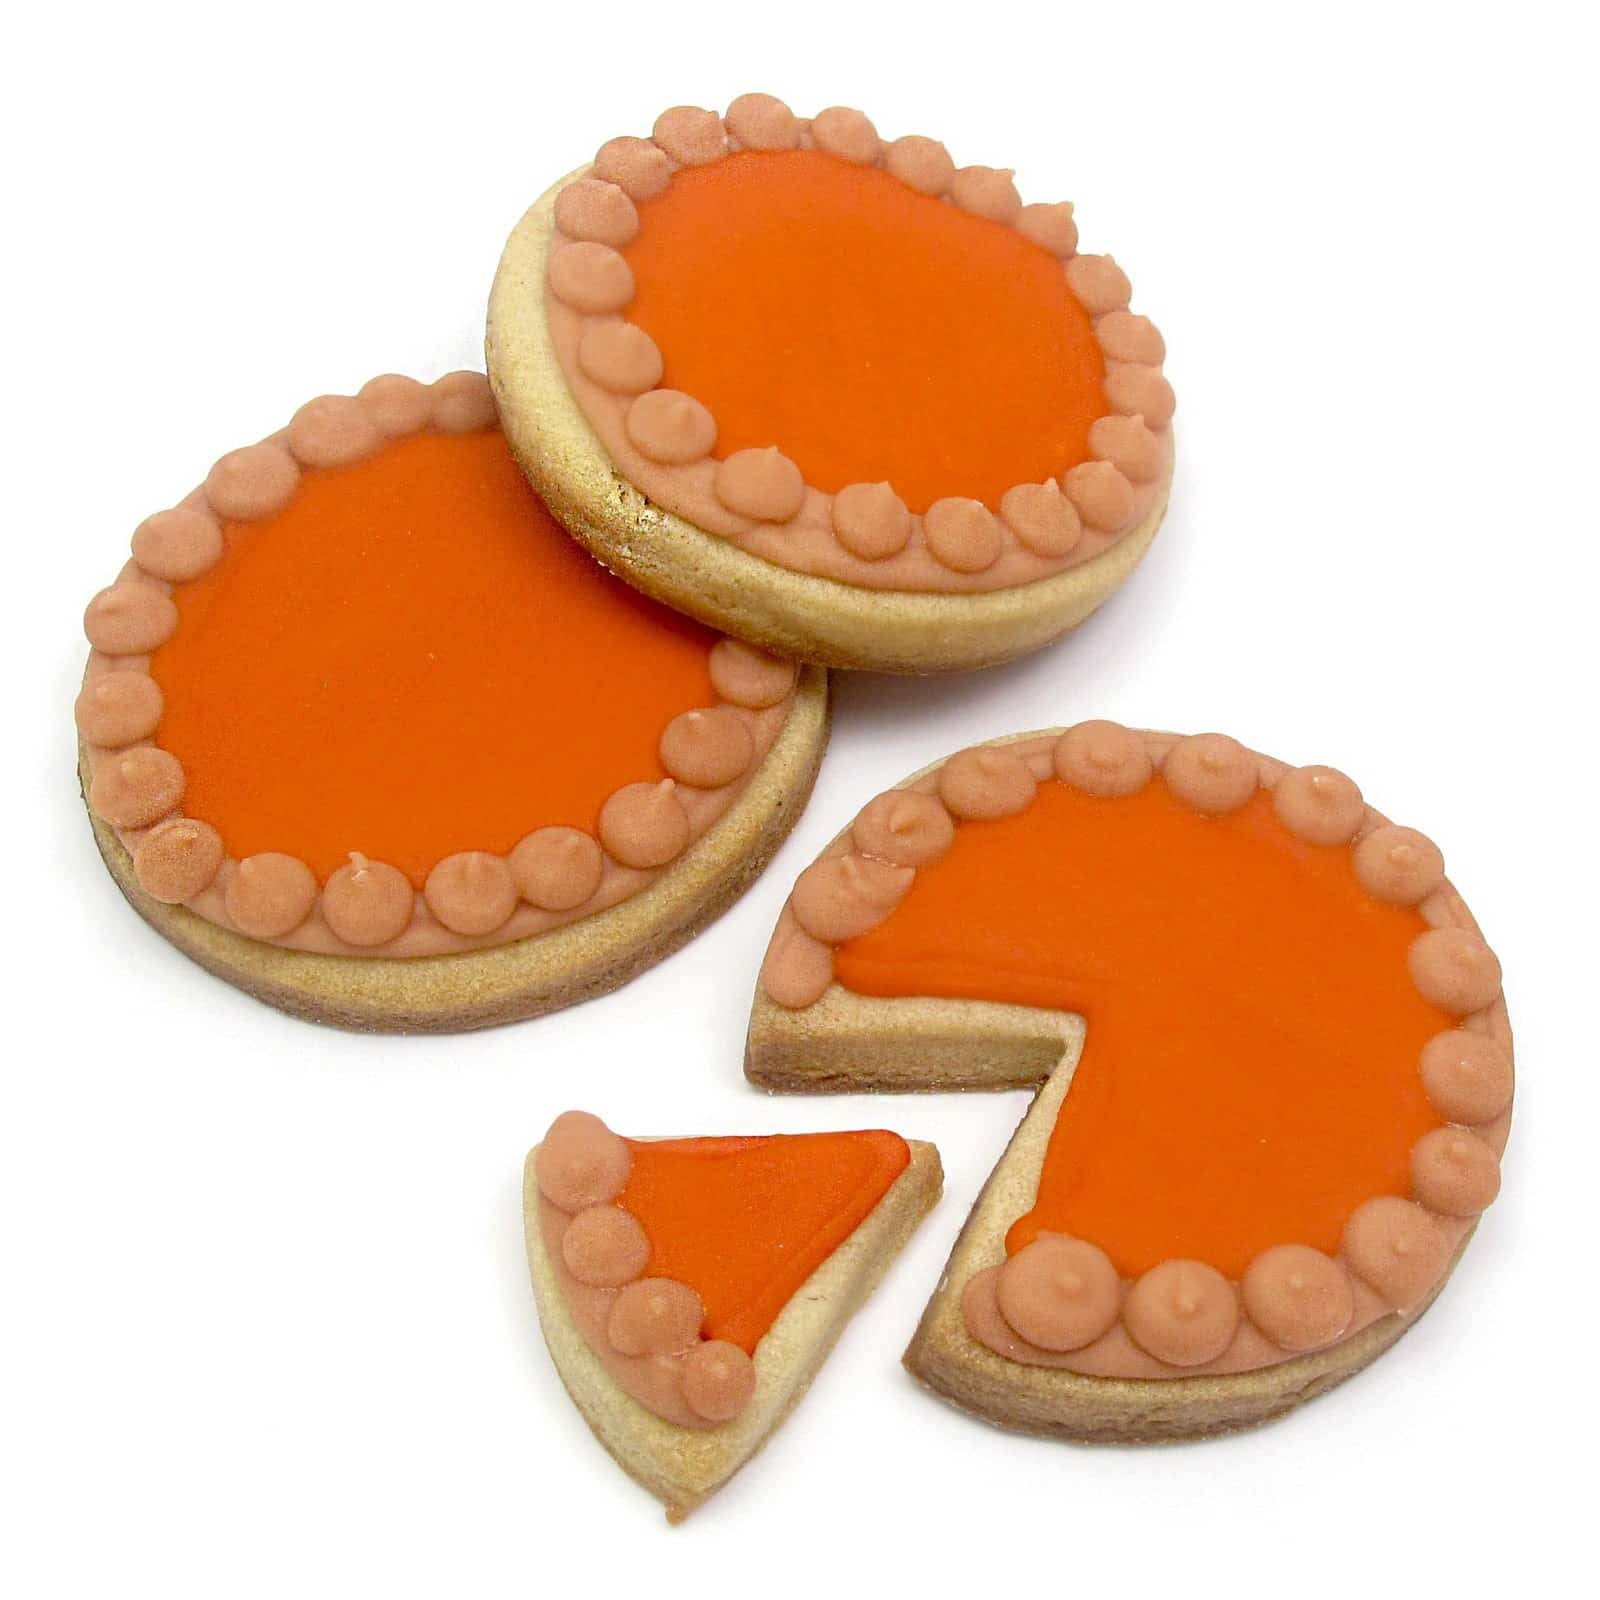 Thanksgiving Cookie Decorating Ideas: Pumpkin Pie Cookies